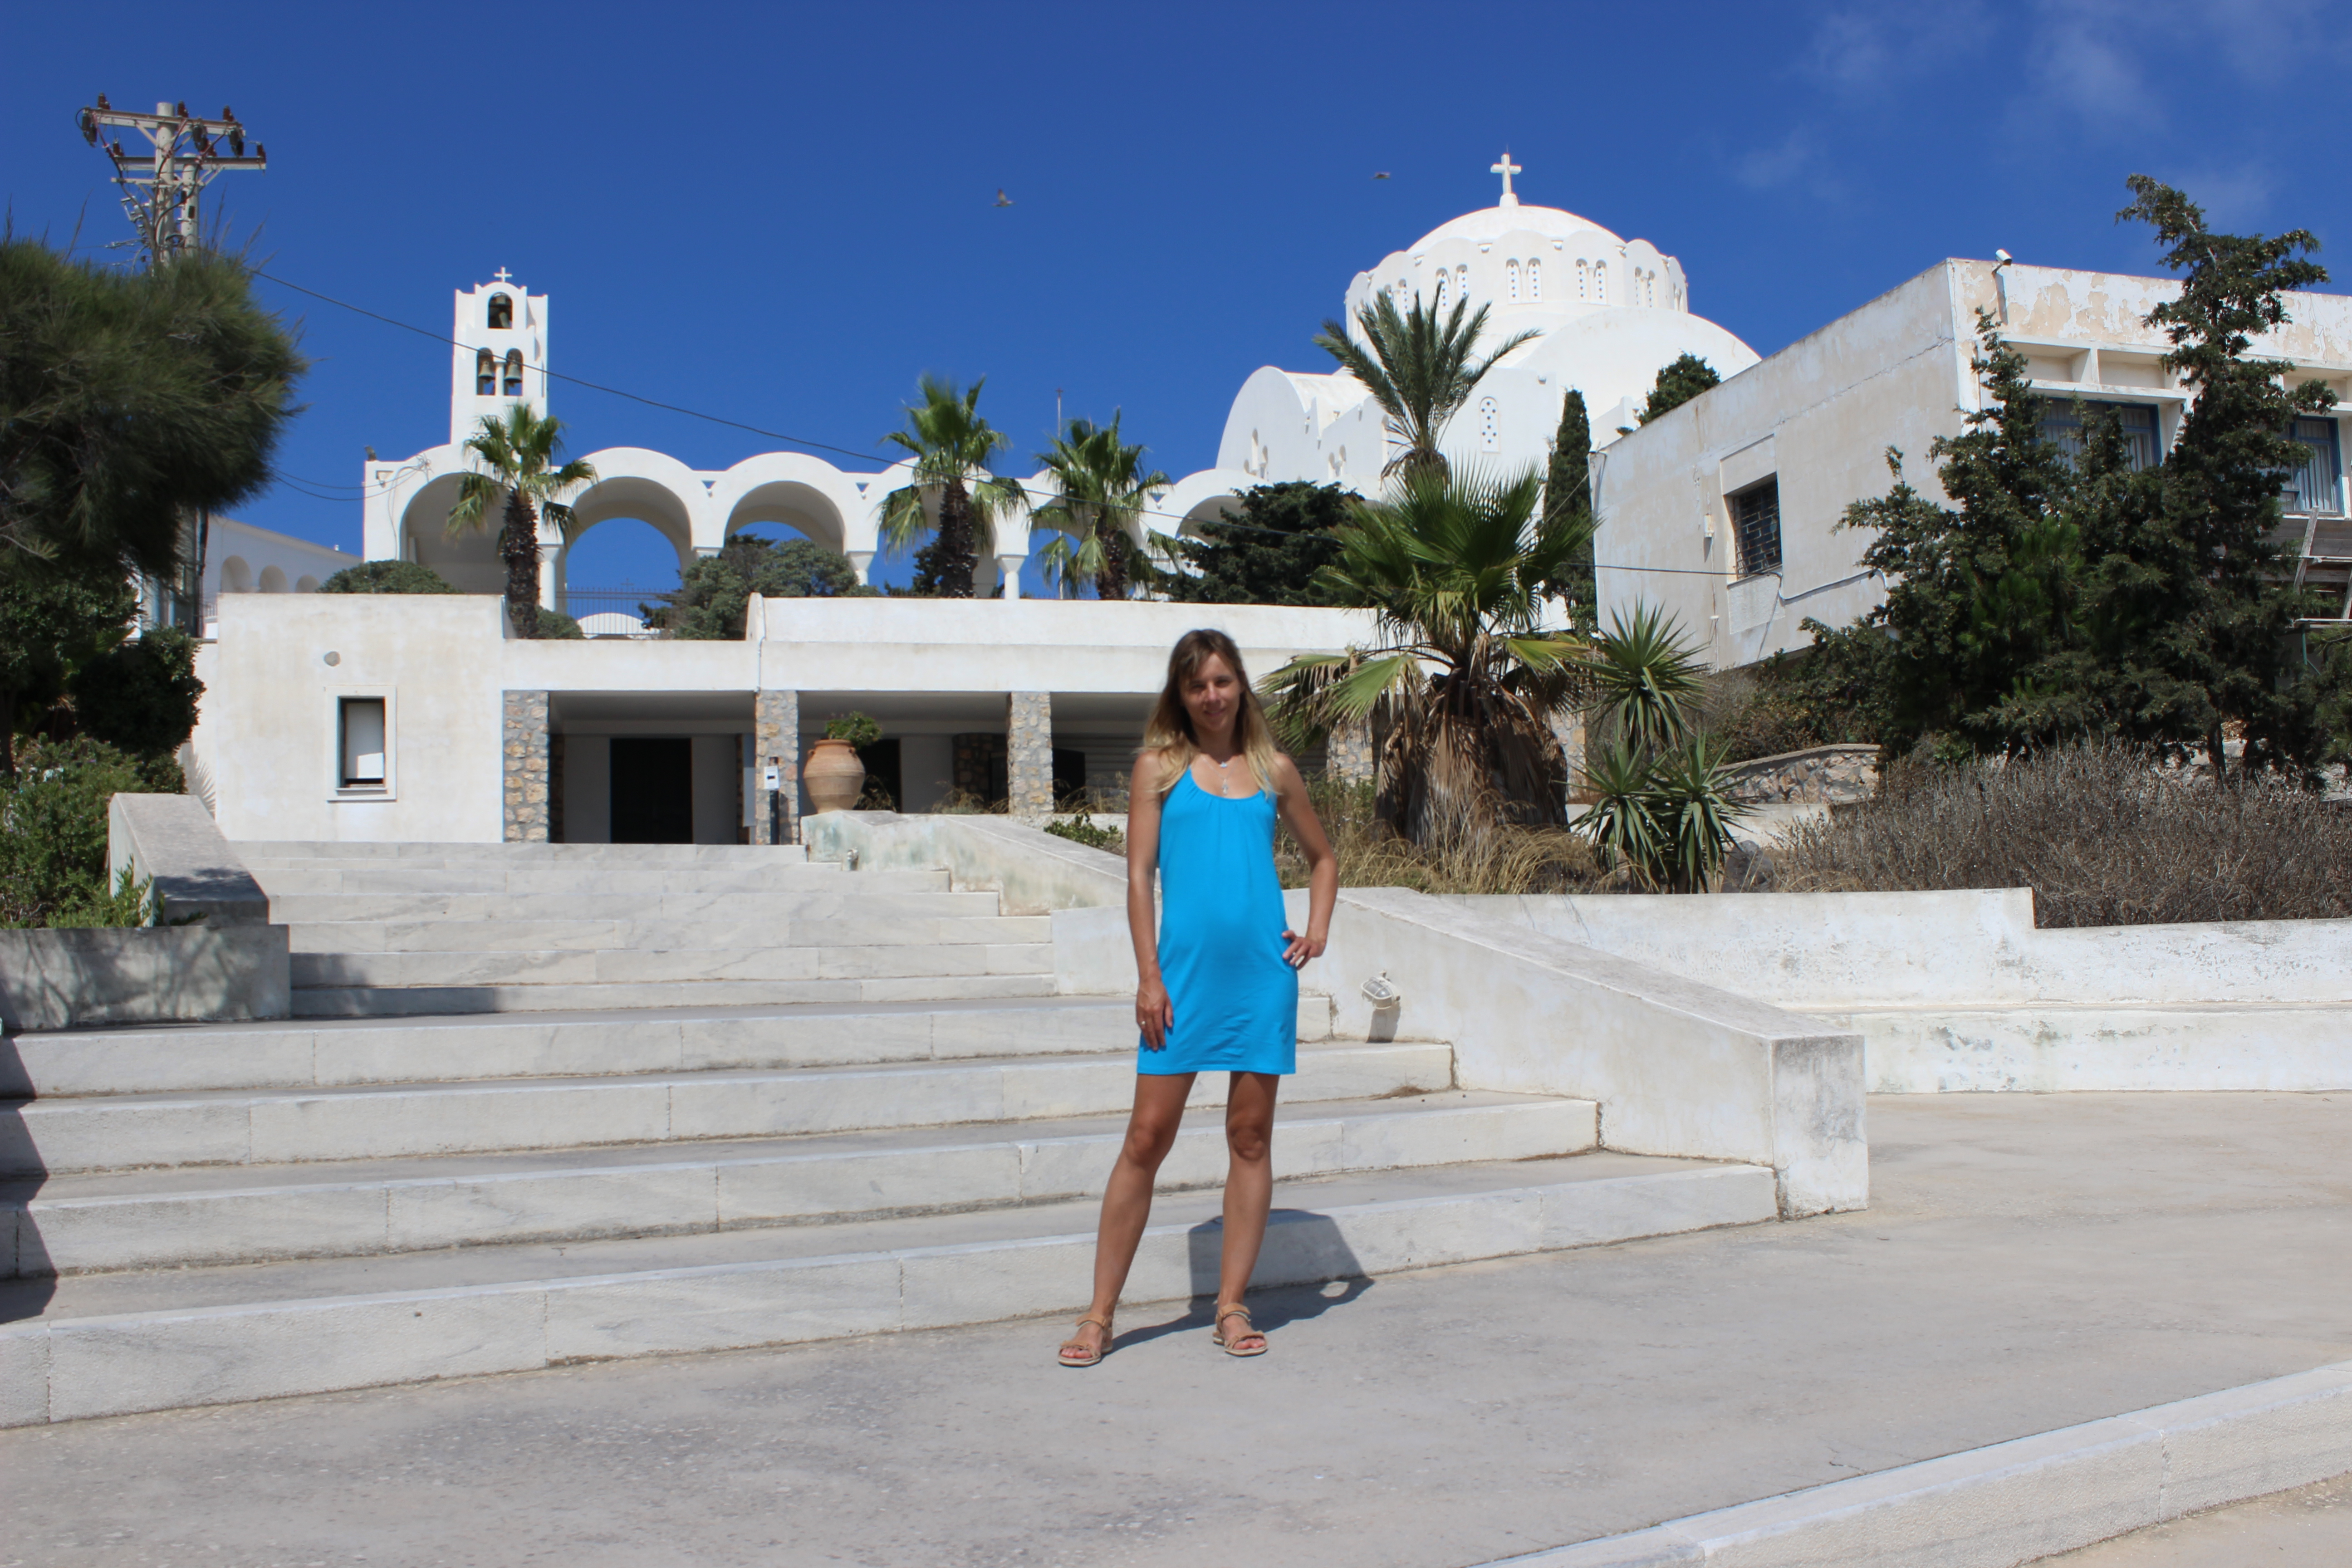 34. At the entrance to the museum of Firá (Φηρά) - There is a main cathedral of Firá in the background. Santorini